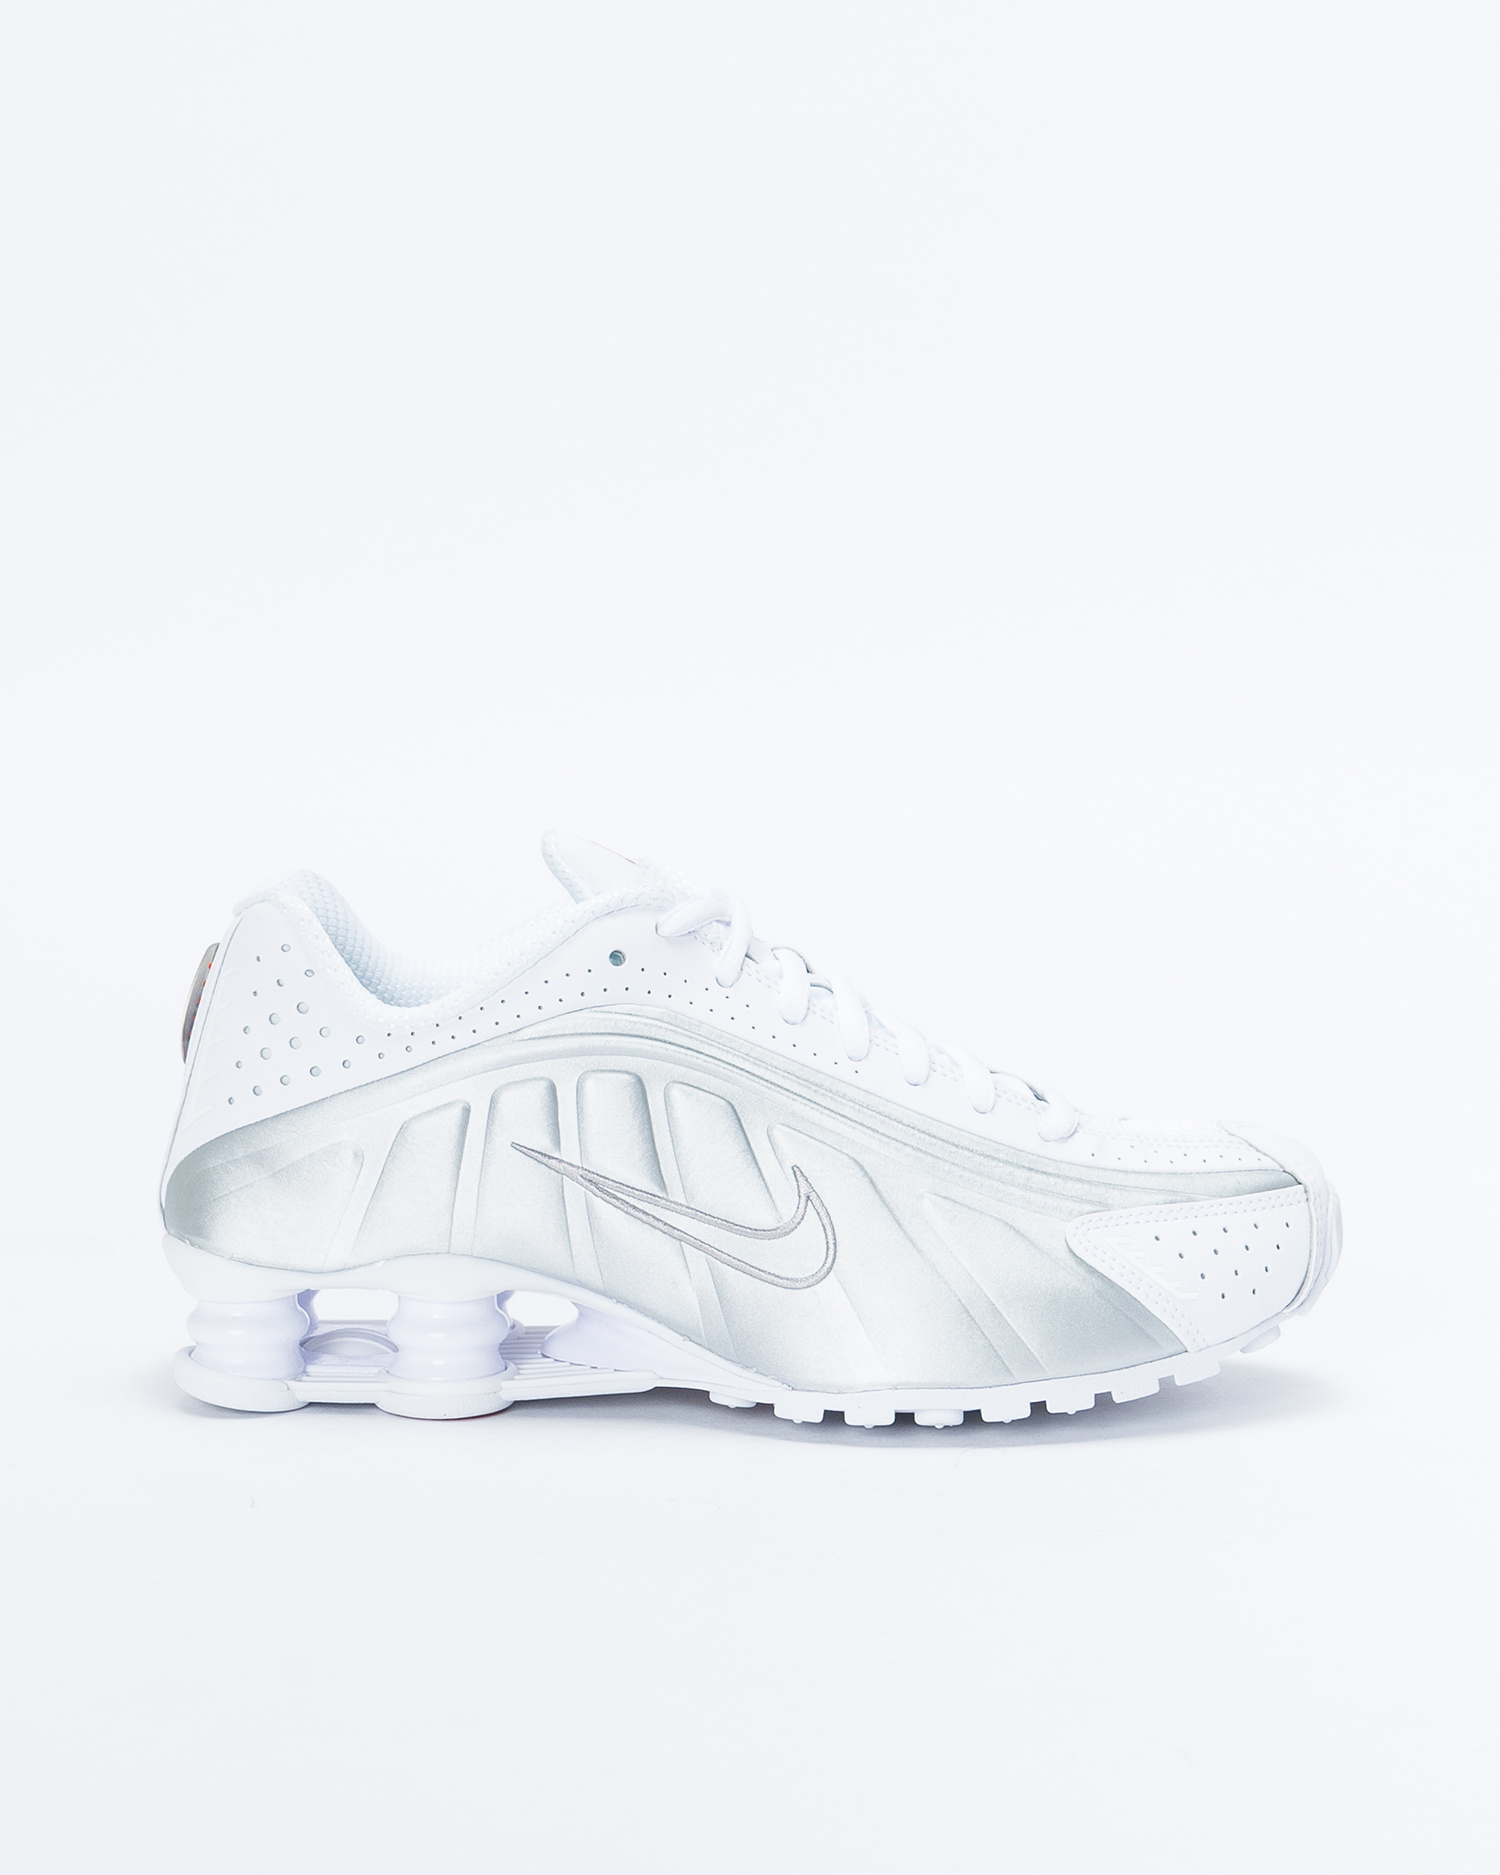 great deals 2017 nice shoes factory outlets Nike Shox R4 White/White-Metallic Silver-Max Orange